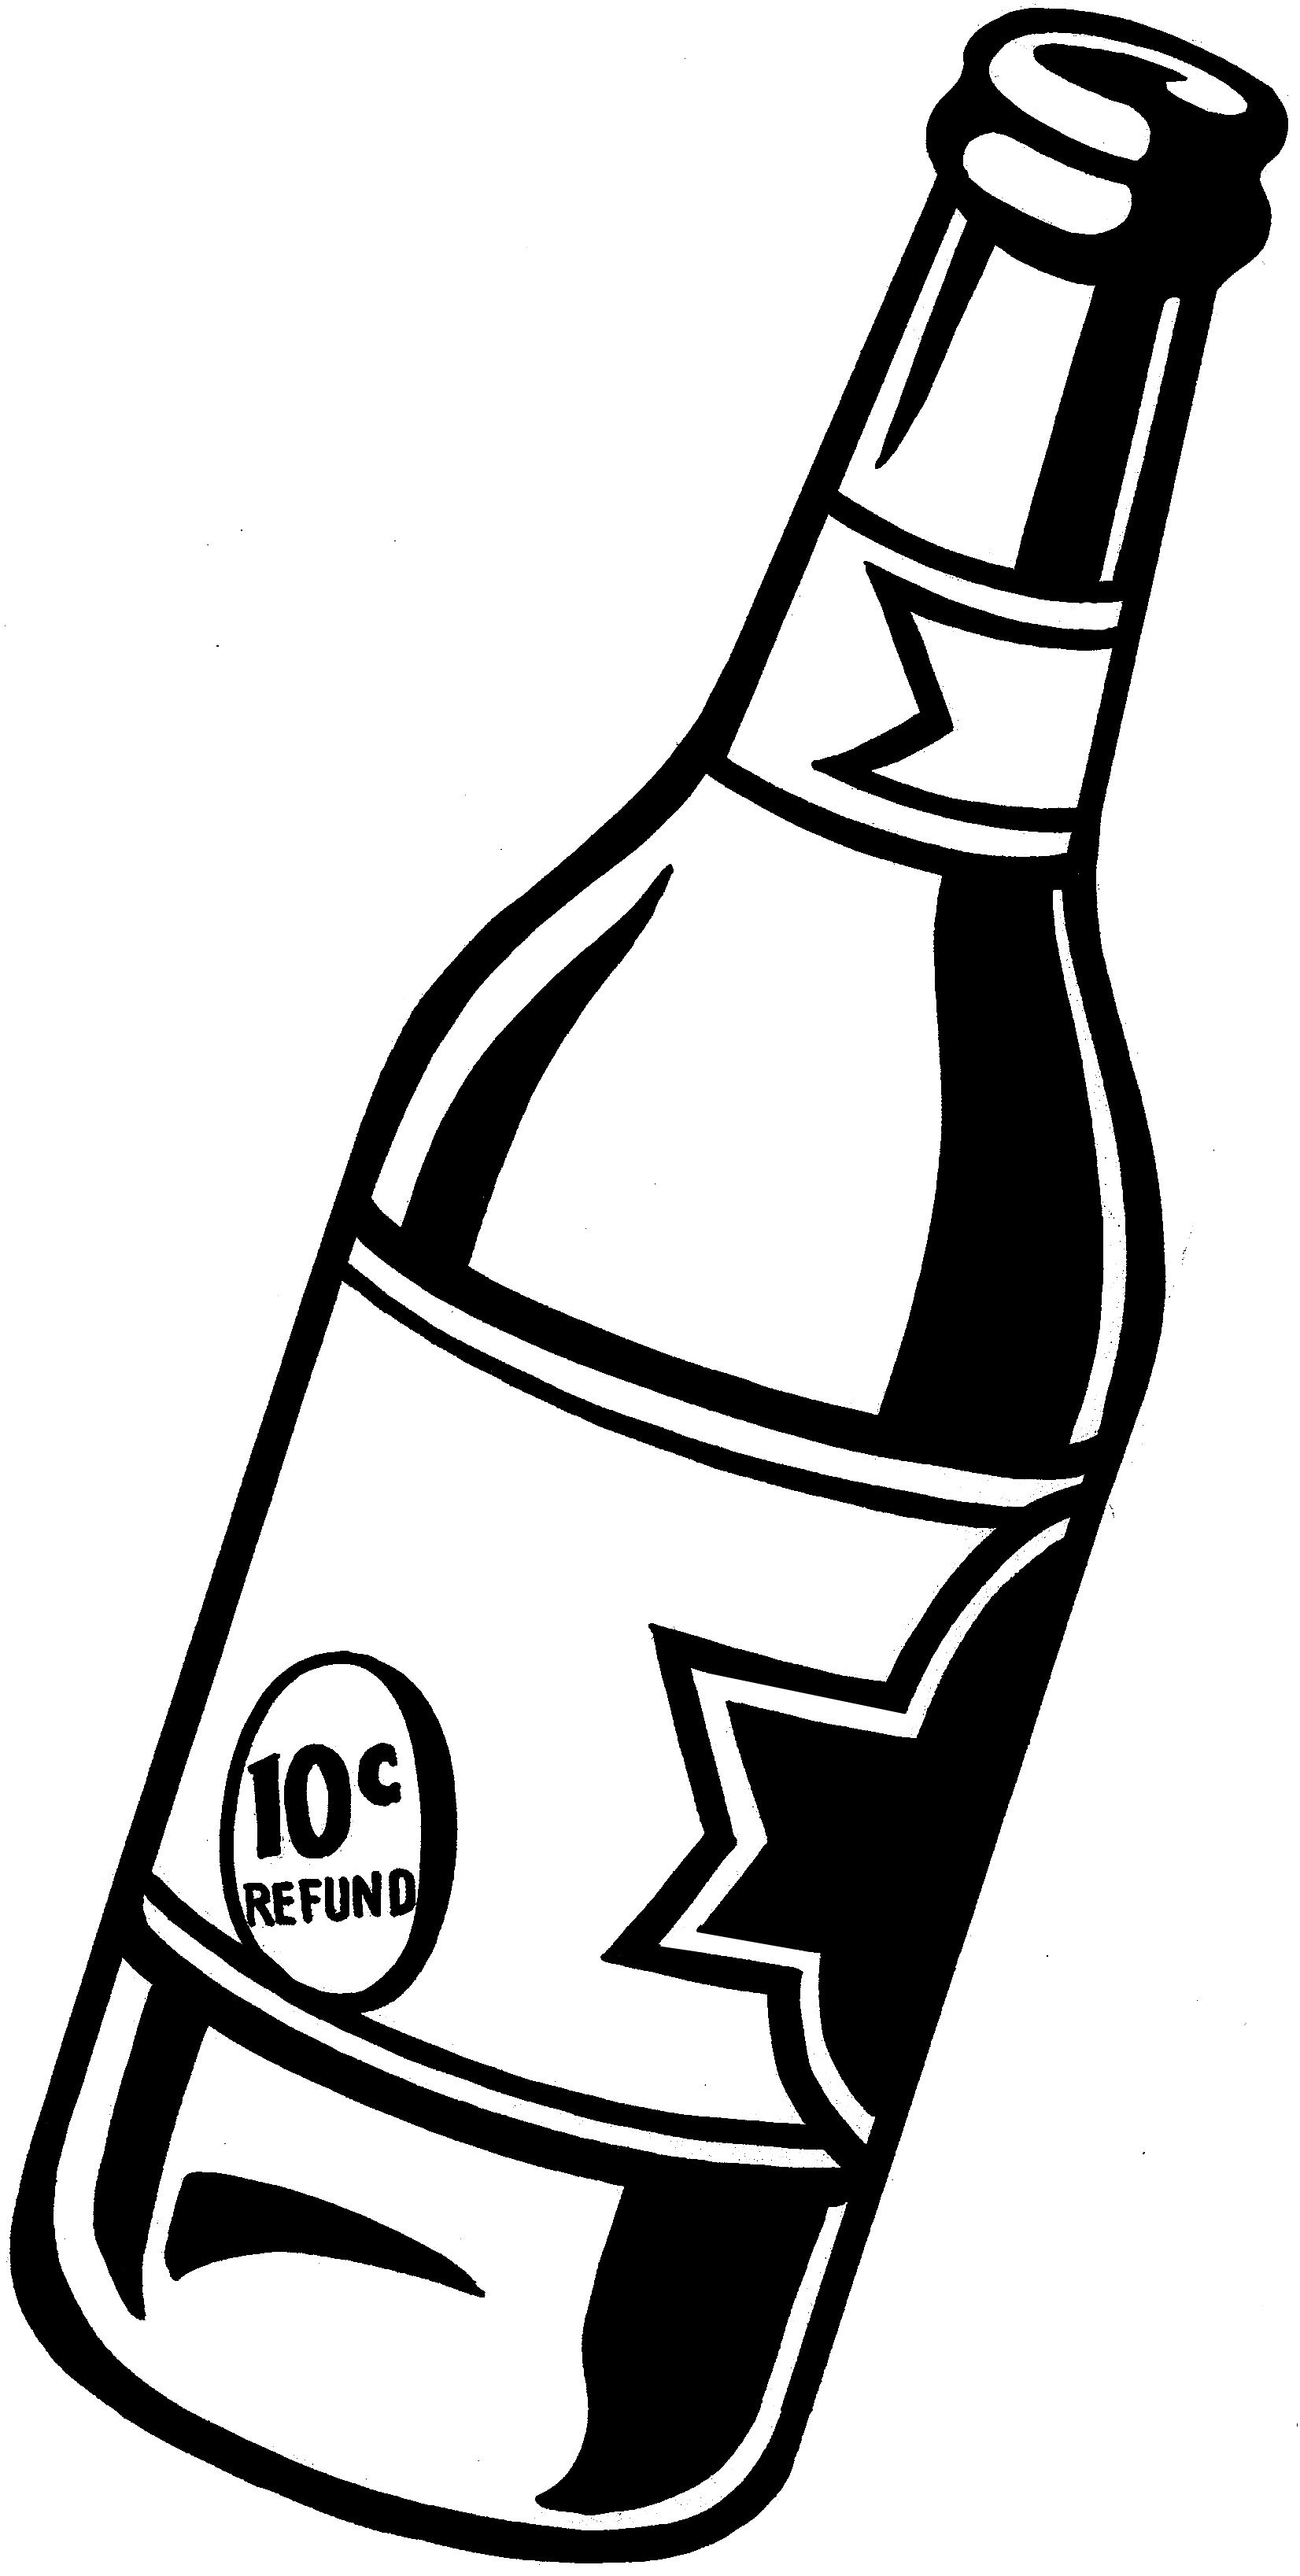 beer bottle clipart clipart kid work pinterest signage beer rh pinterest com beer bottle clipart beer bottle outline clip art